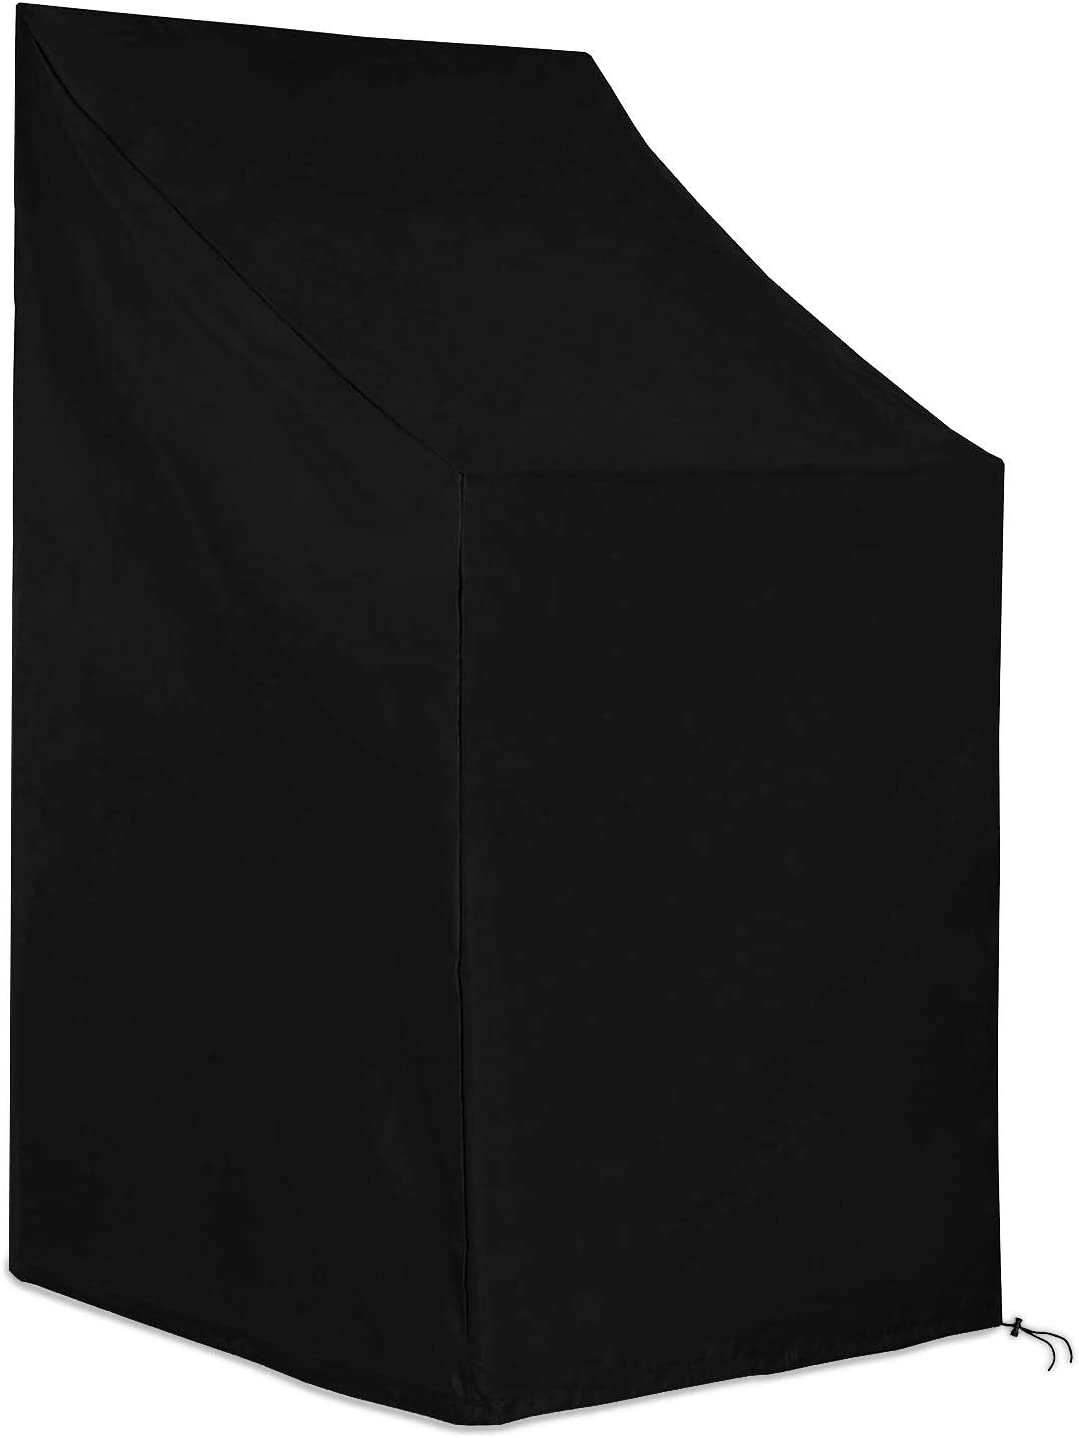 SING F LTD Furniture Chair Cover Black Supply Protection Chaise Dustproof Waterproof Stacking Outdoor Garden Patio 65x65x120/80cm